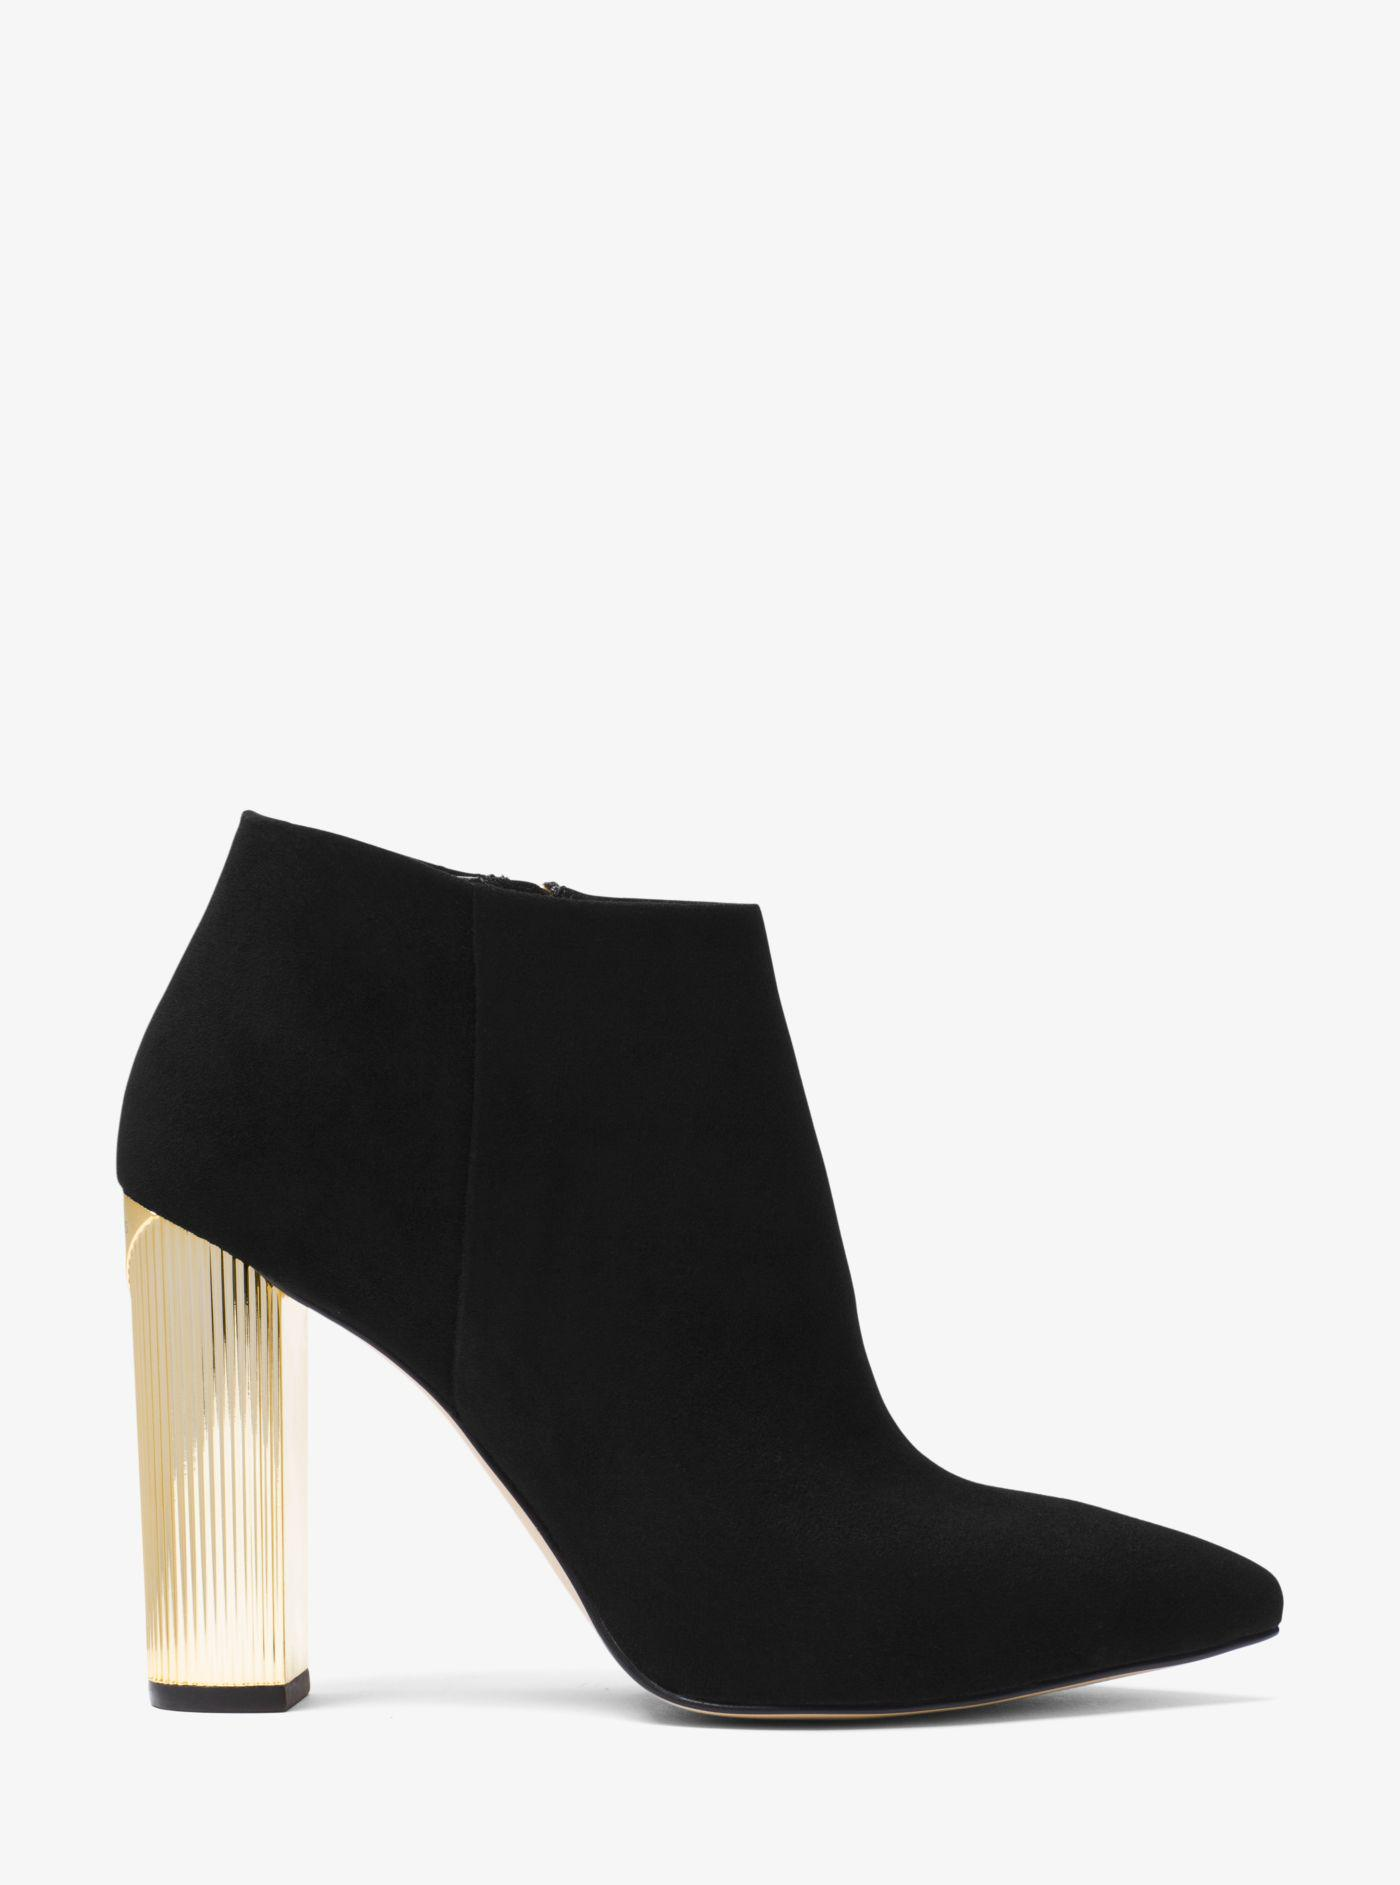 Michael Kors Paloma Suede Bootie in